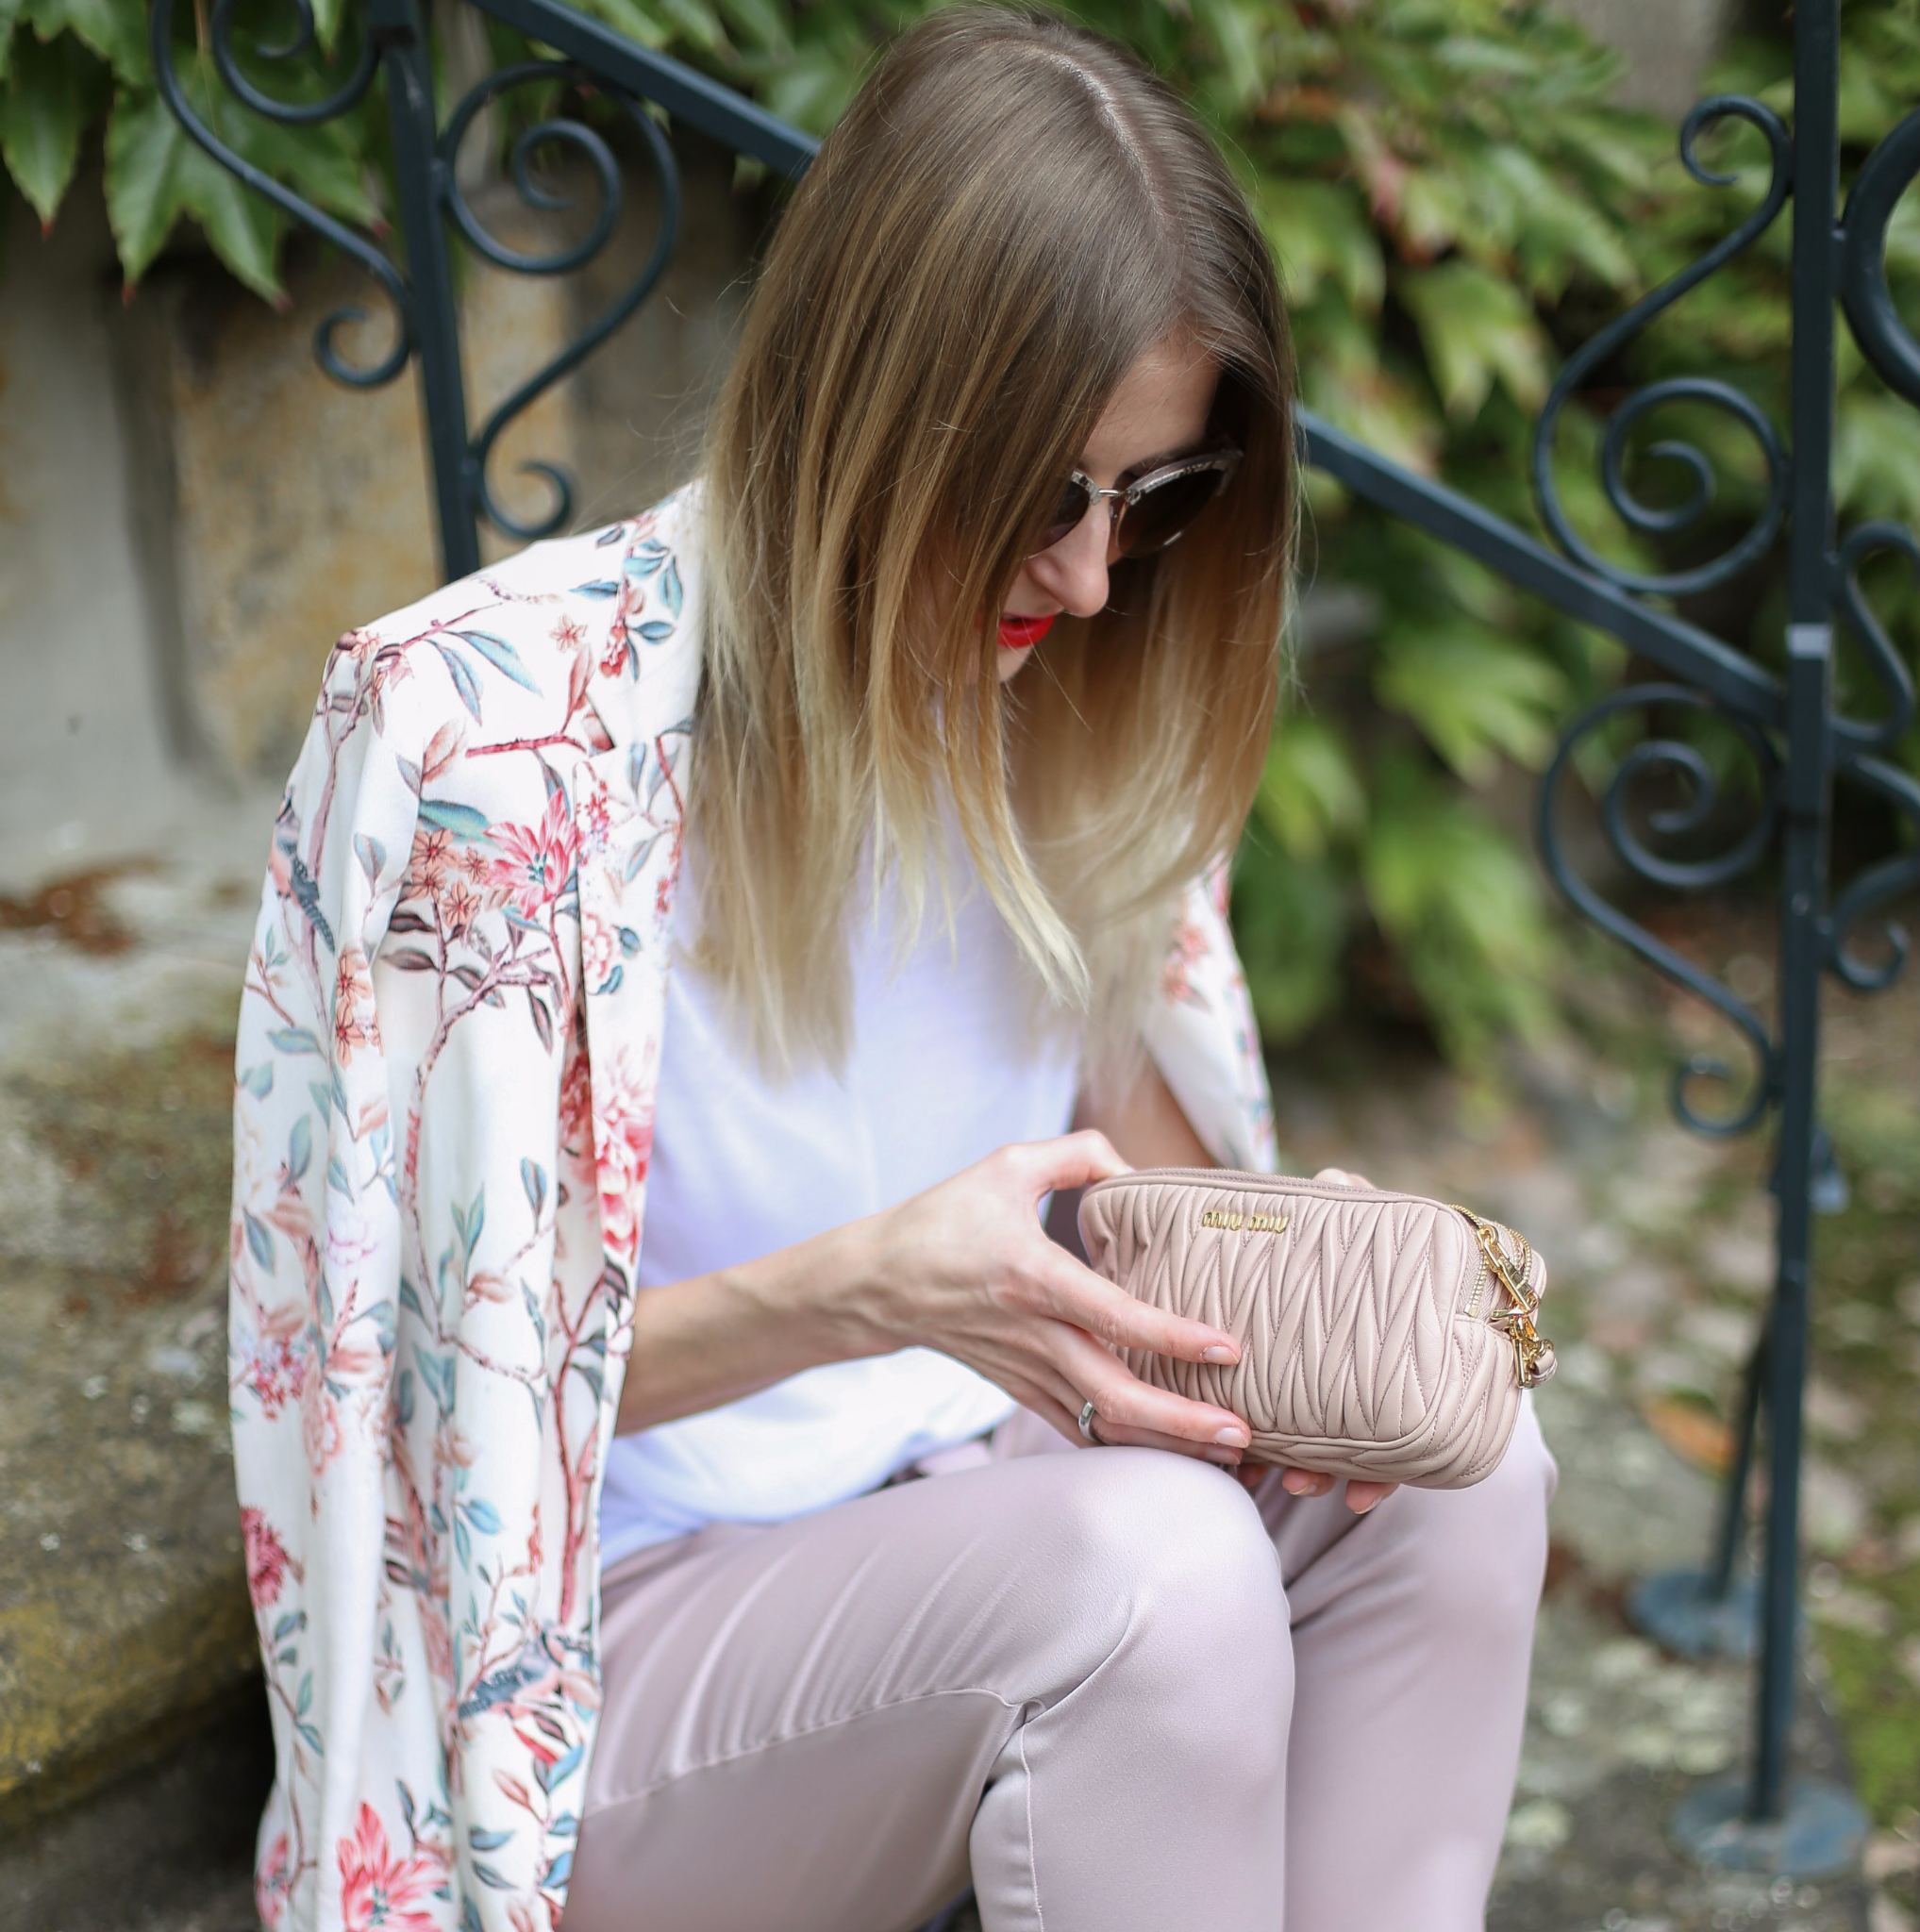 MOD-by-Monique-Looks-Pastel-Flower-Blazer-River-Island-Shoes-15-pix